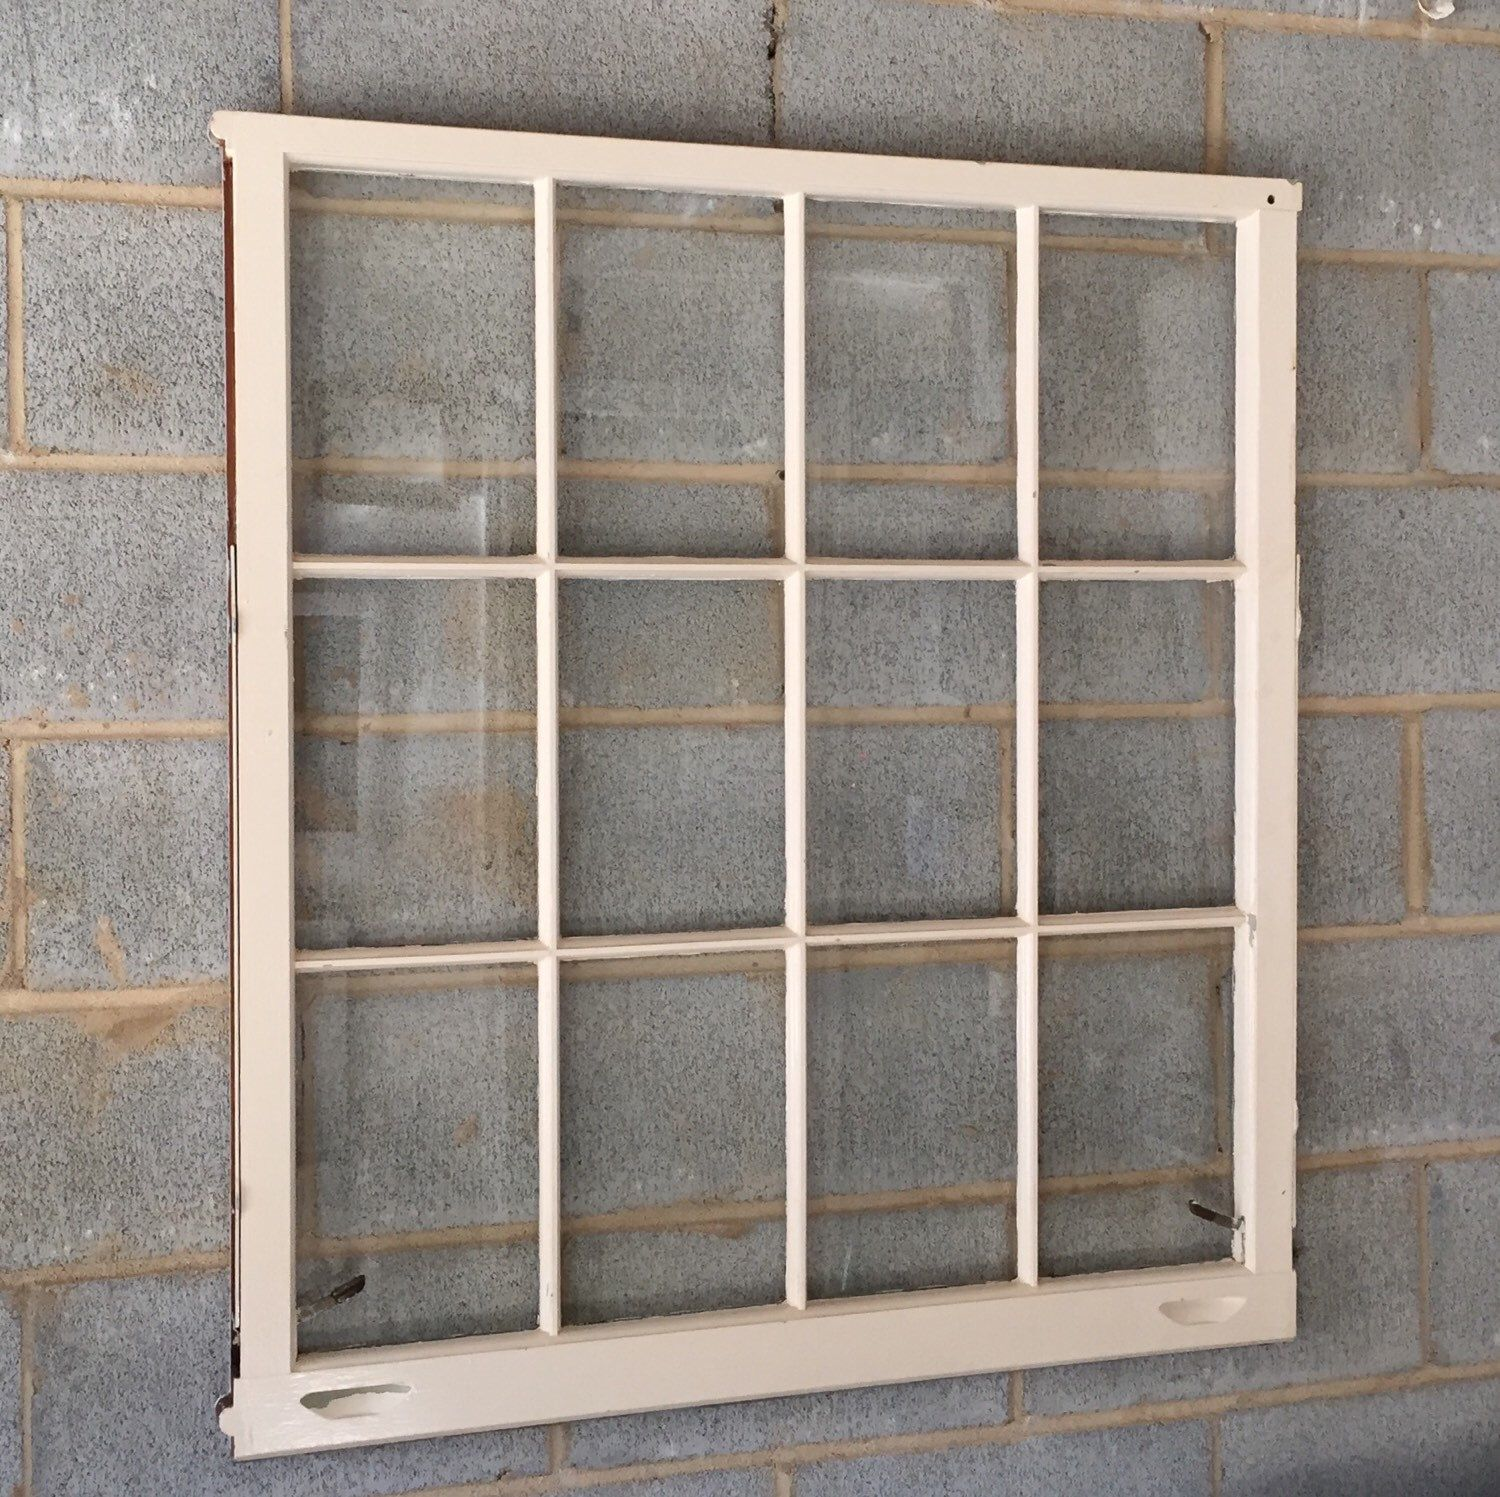 Vintage 12 Pane Window Frame 36 X 40l White Rustic Antique Wedding Beach Decor Photos Pictures Engagement Holiday Business